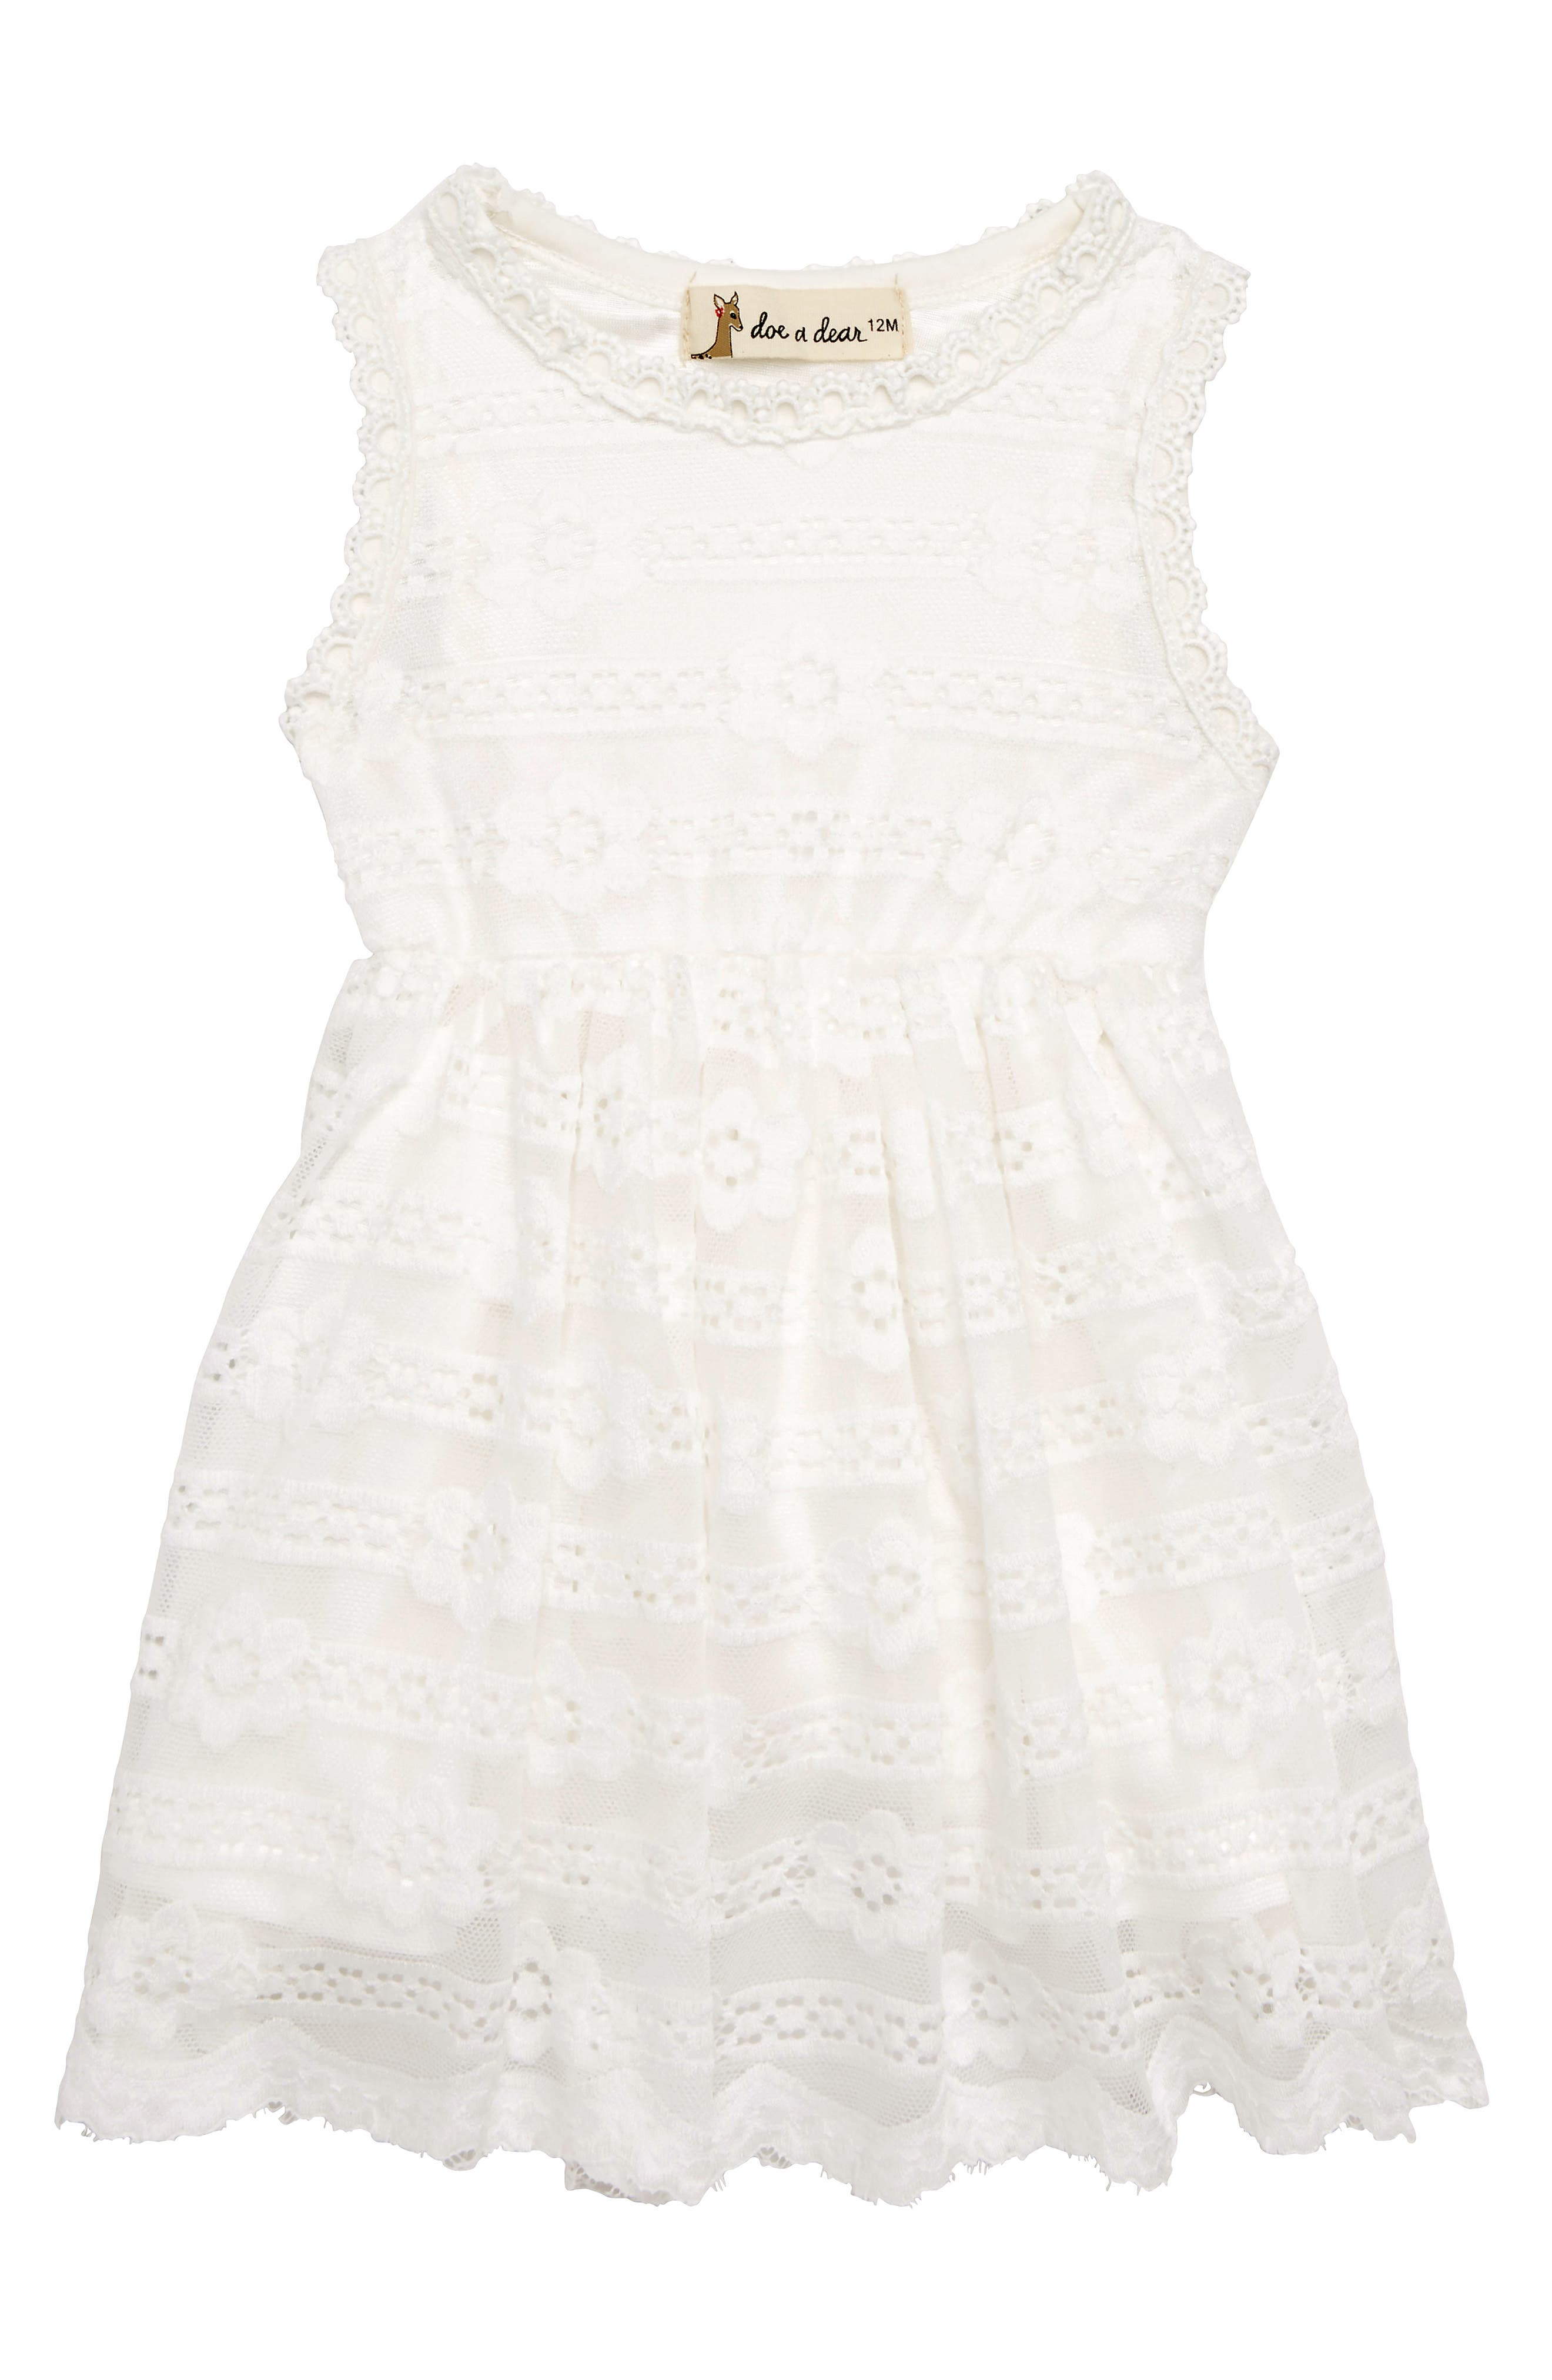 Doe a Dear Princess Cut Party Dress (Baby Girls)